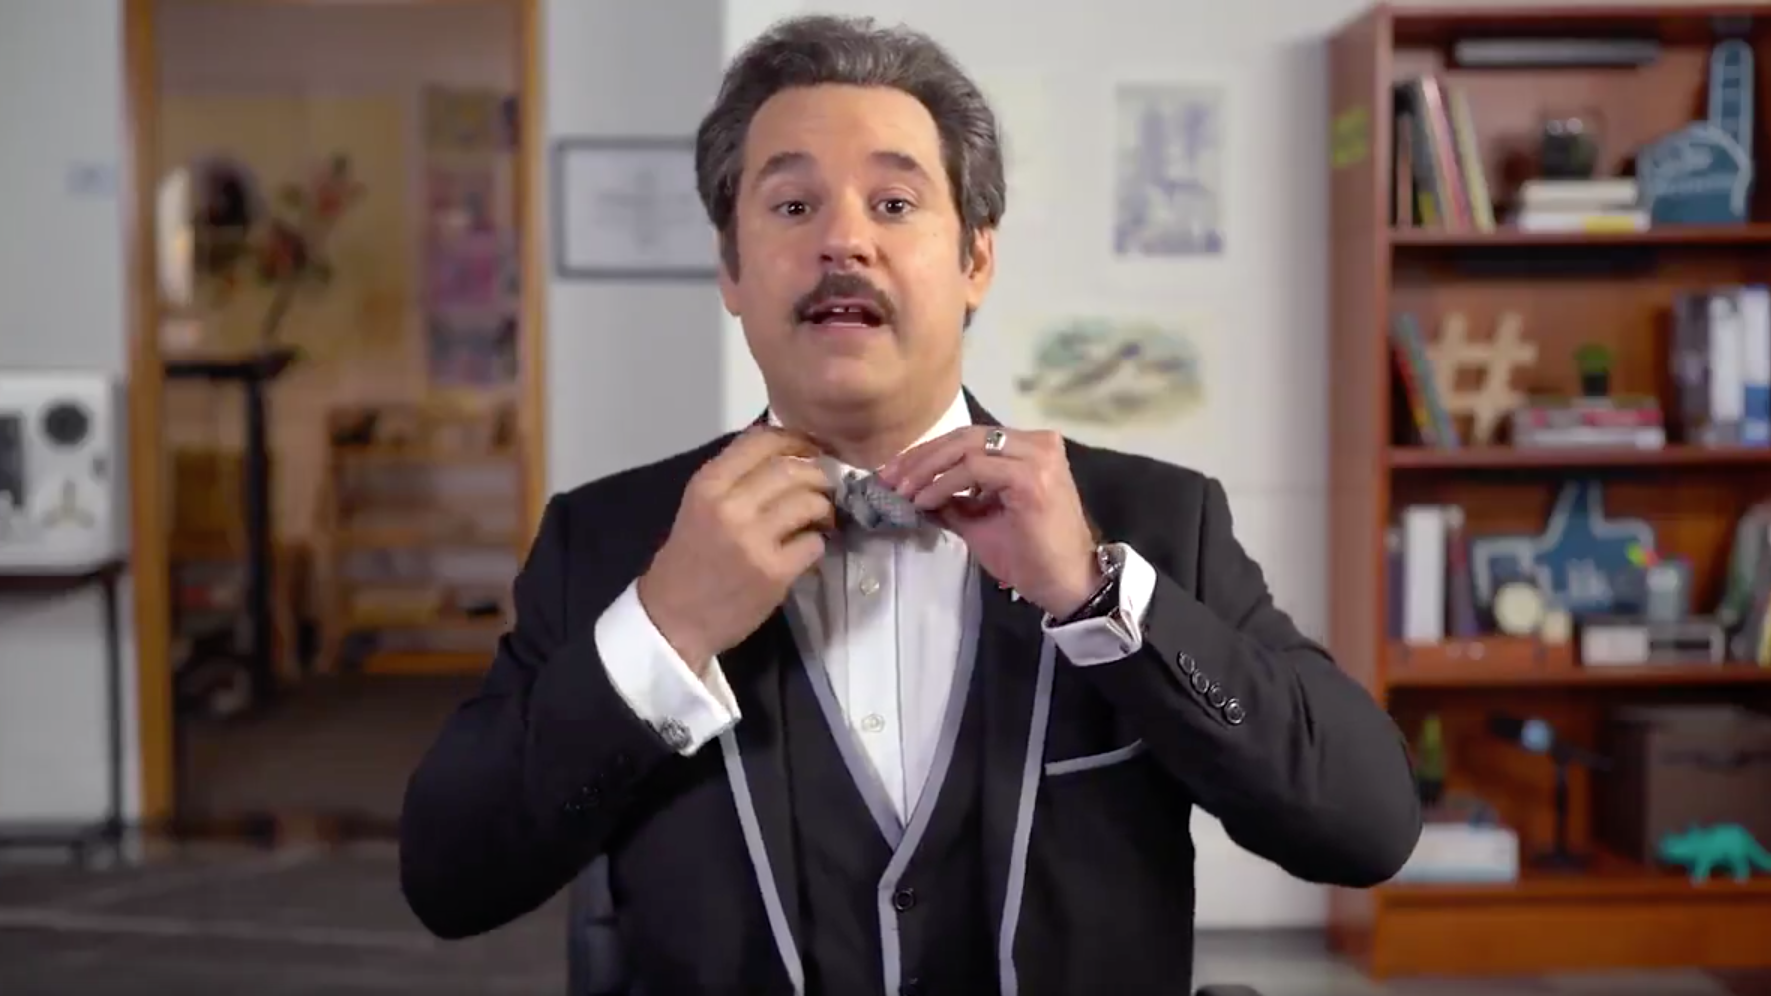 How To Tie A Bow Tie, According To Paul F. Tompkins